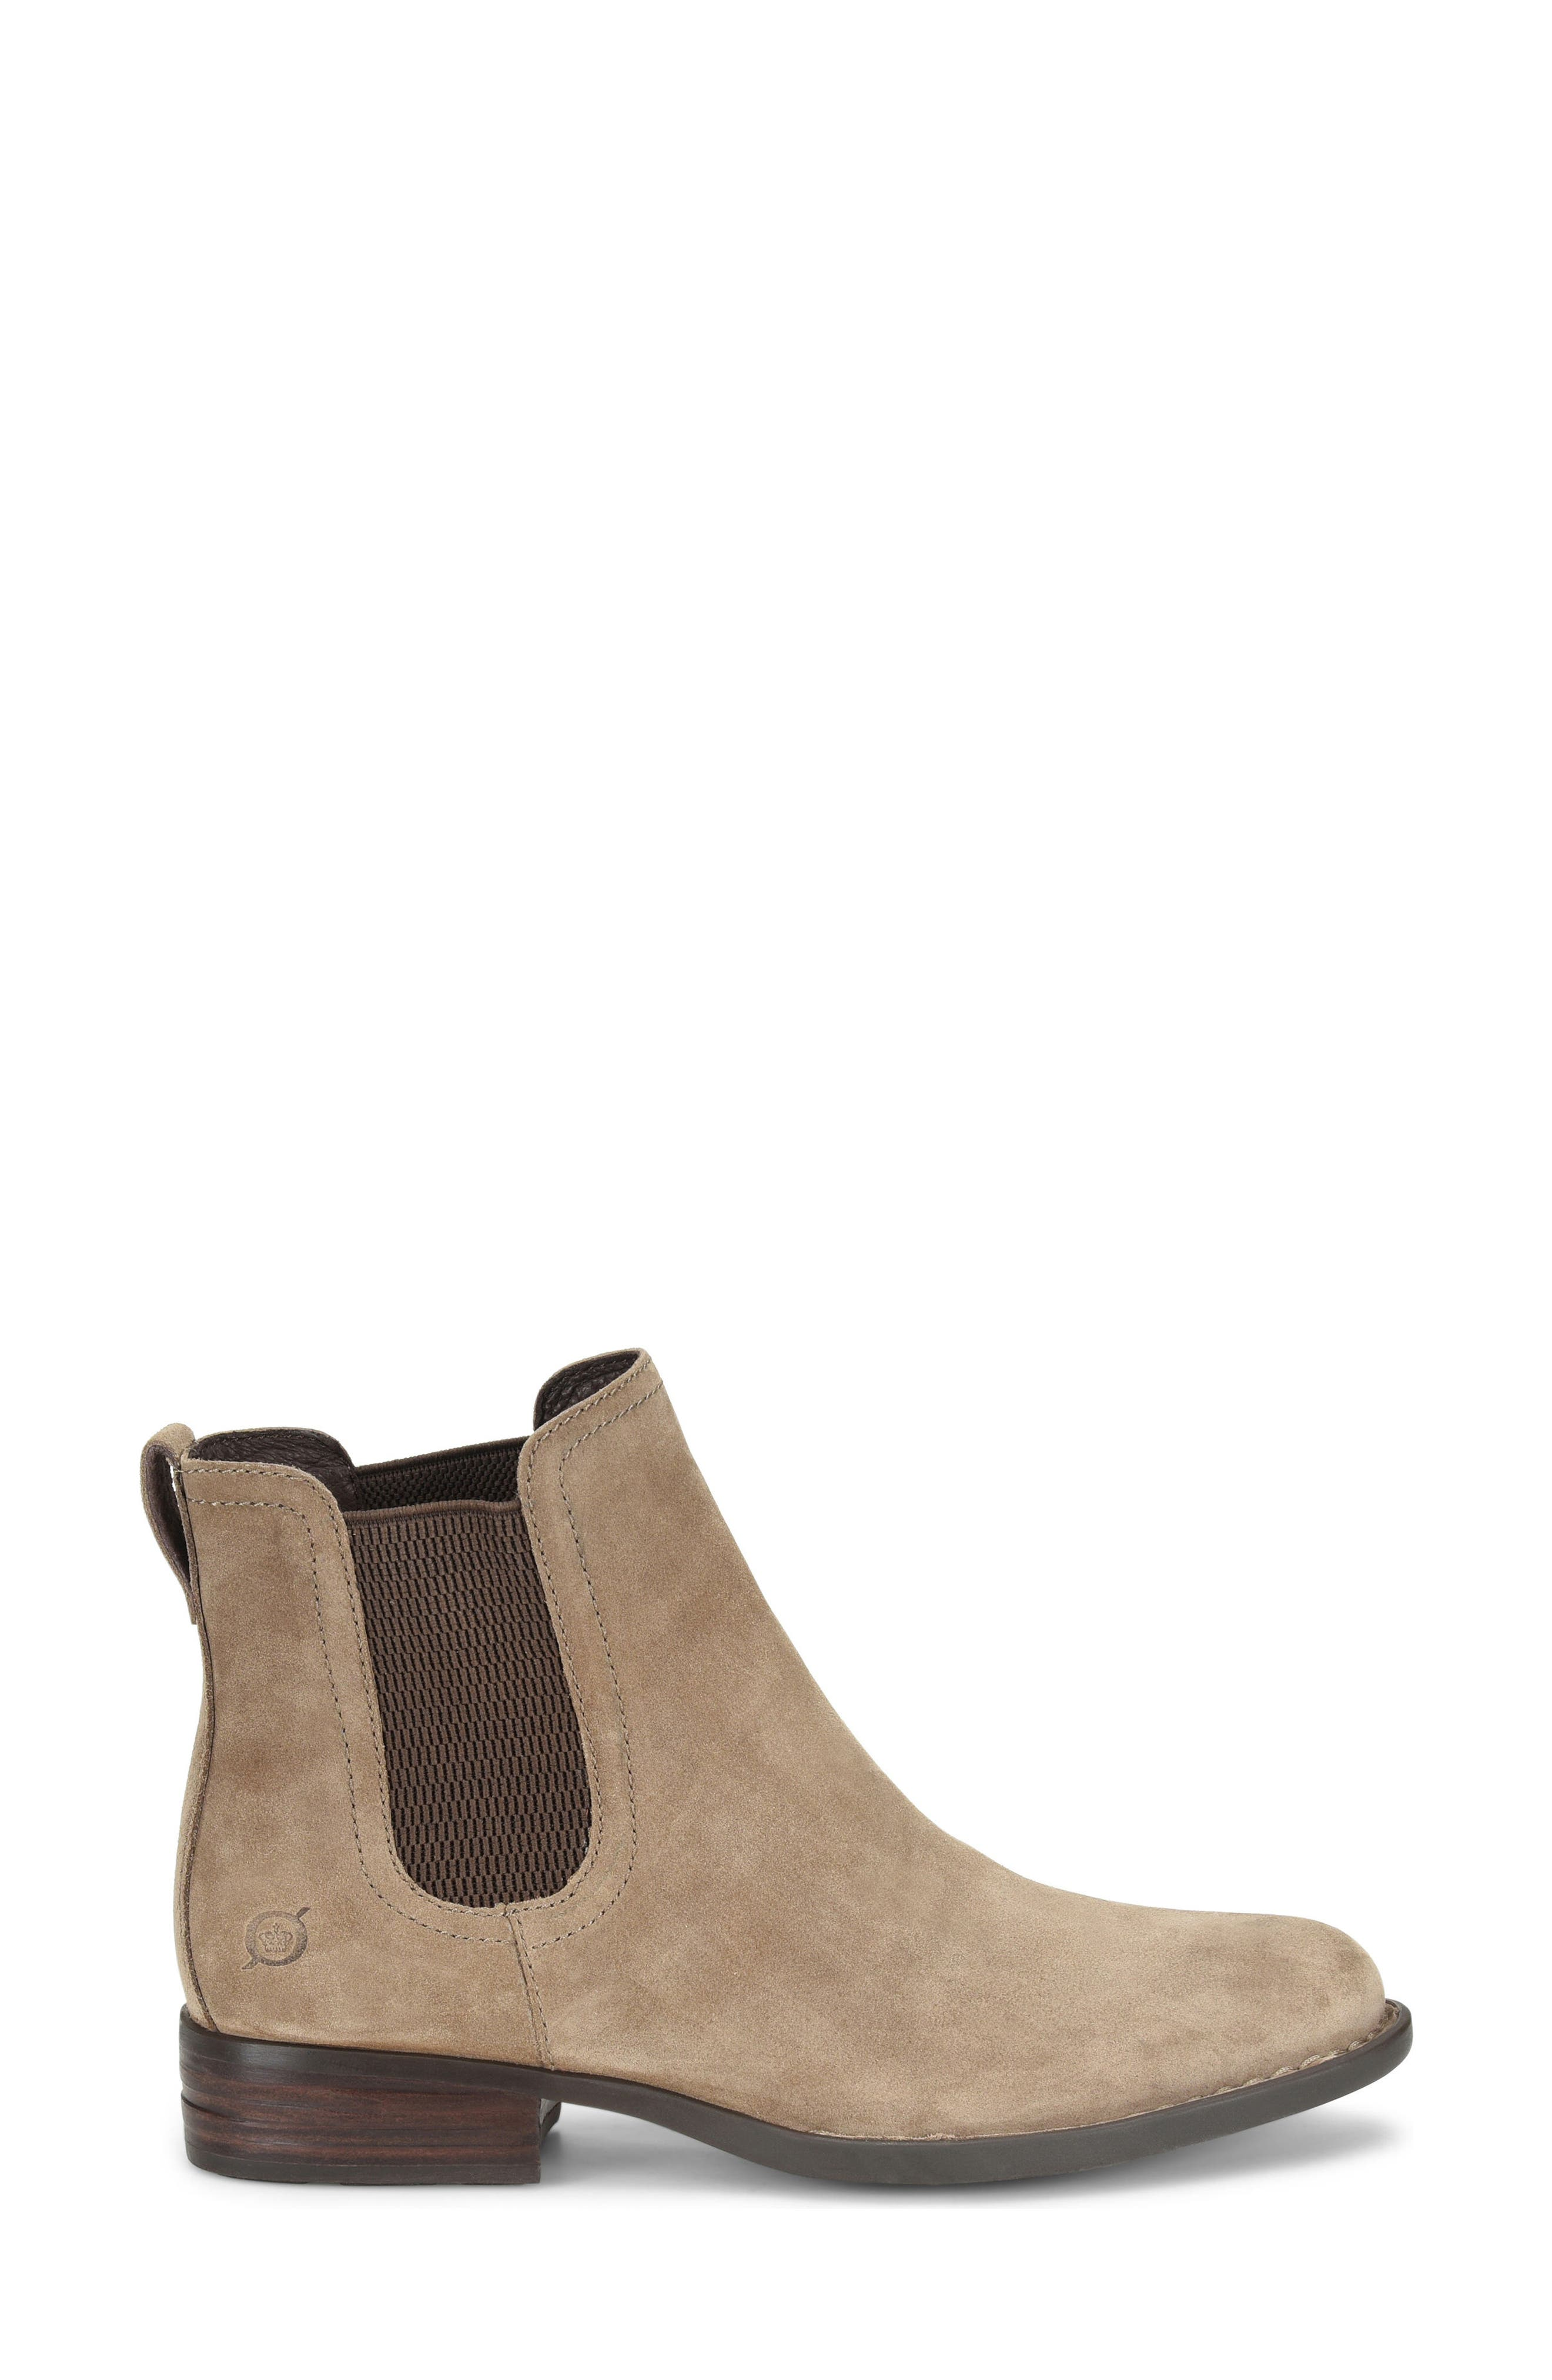 Casco Chelsea Boot,                             Alternate thumbnail 3, color,                             Taupe Suede